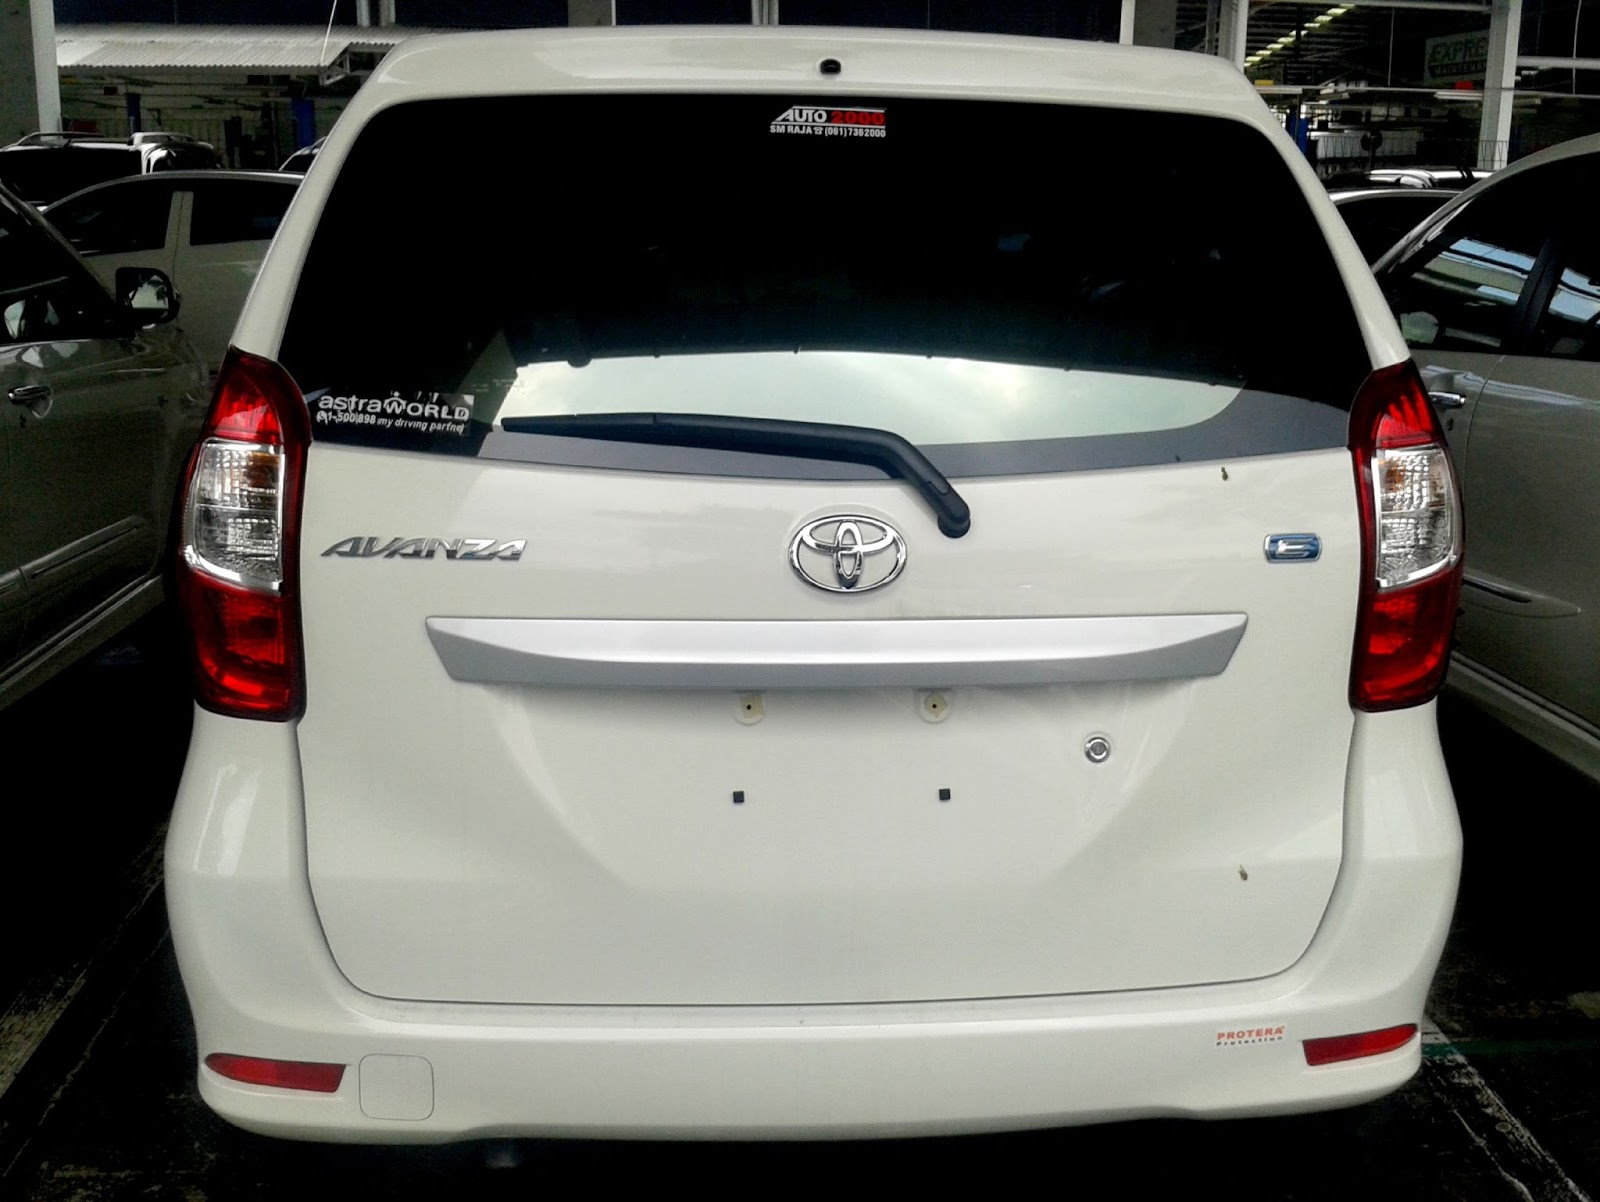 kompresi grand new avanza 2016 harga 1.3 g m/t basic type e 1 3 toyota auto 2000 medan